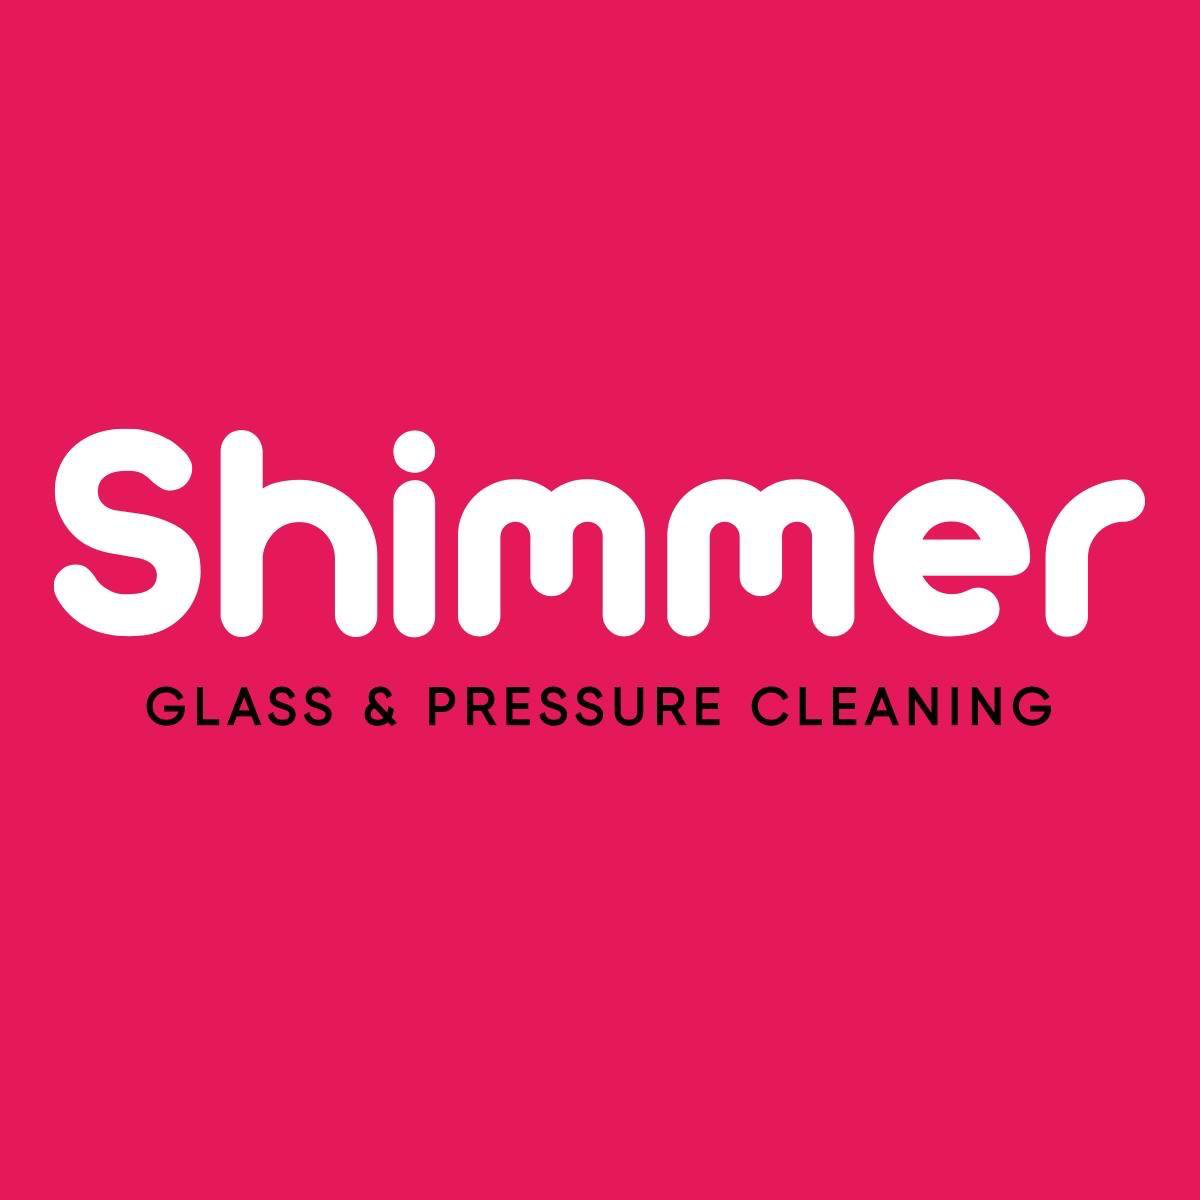 Shimmer Glass & Pressure Cleaning